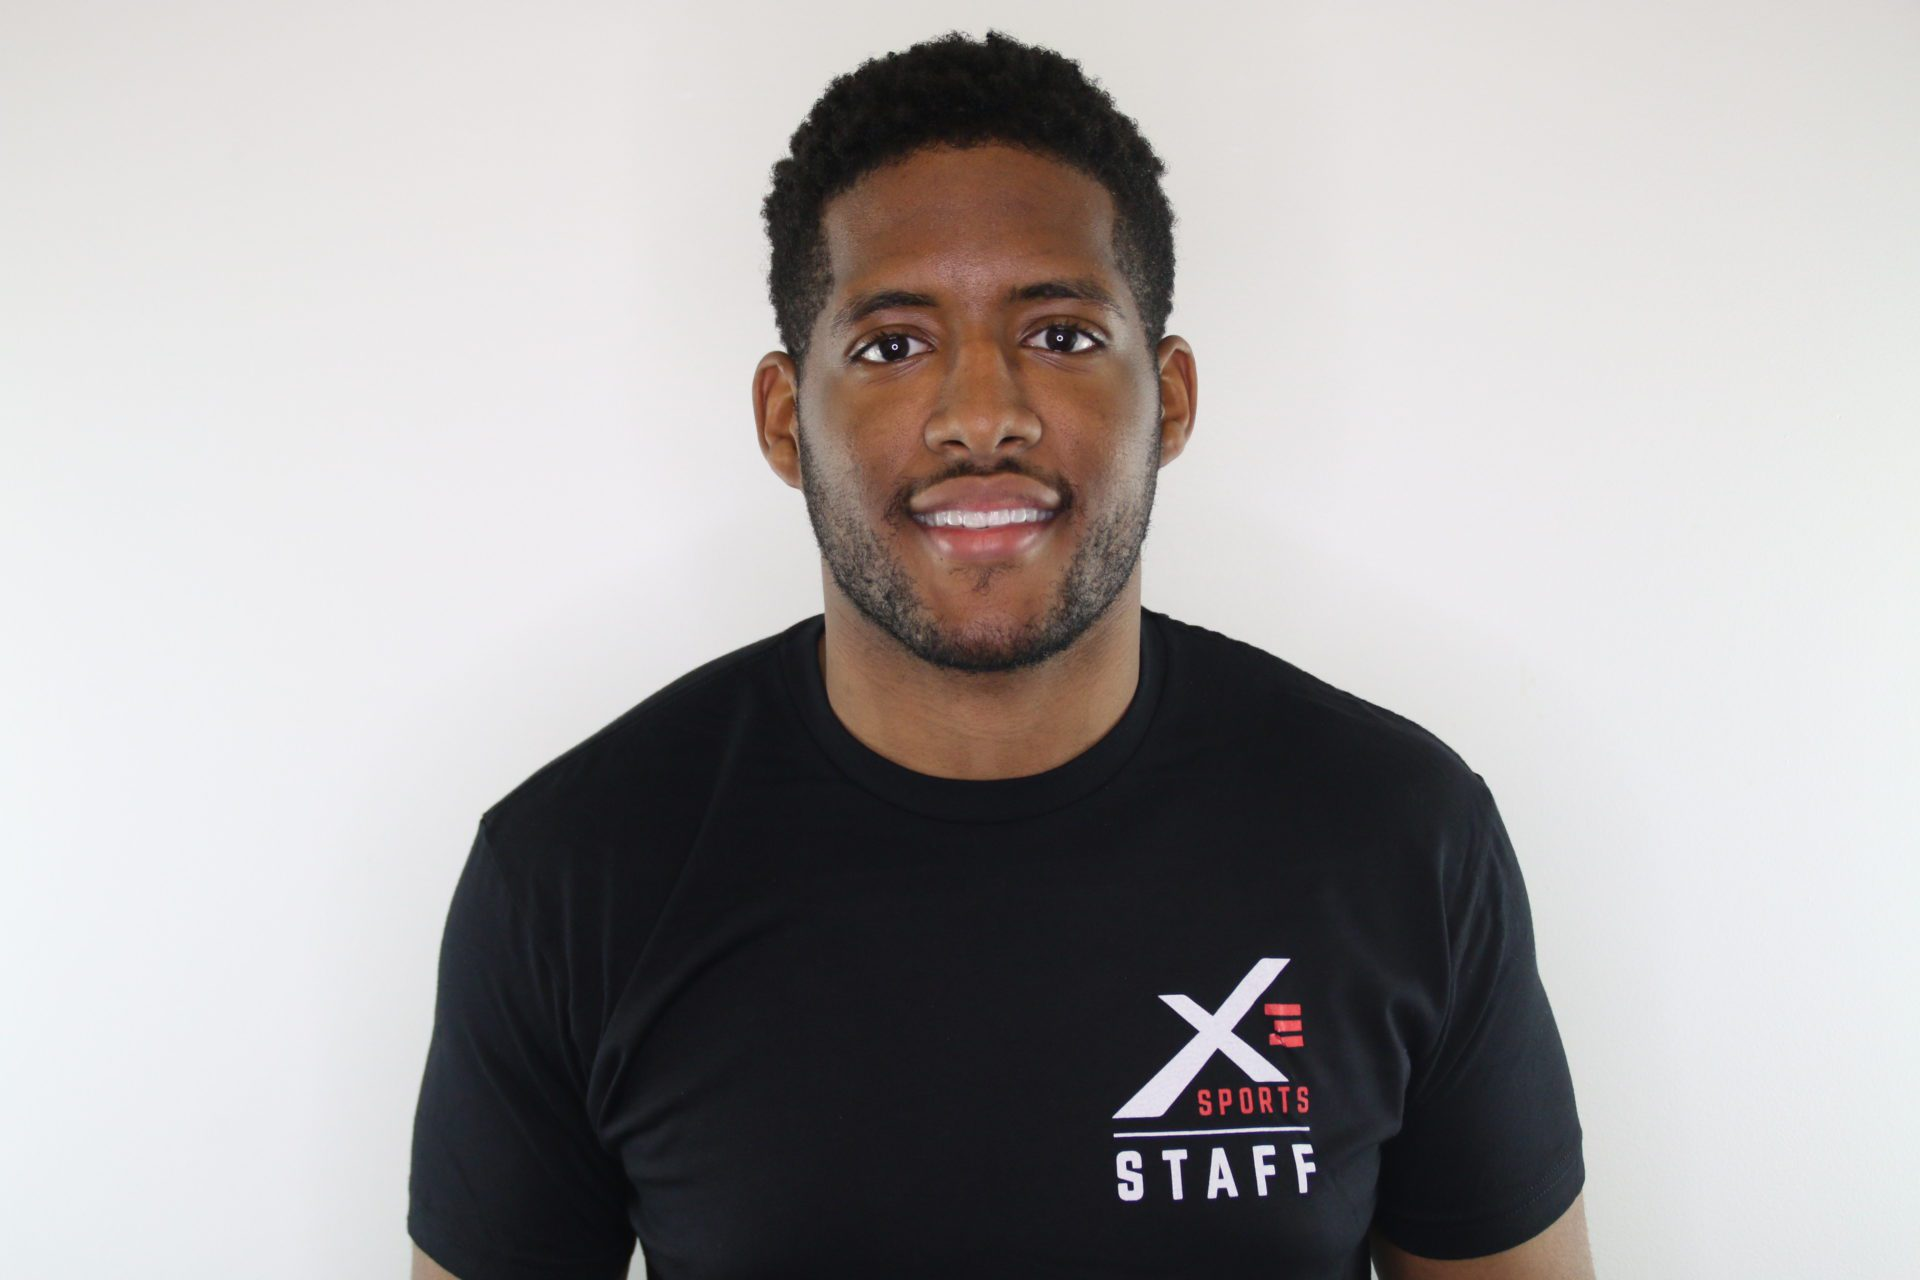 Desmond Harris | X3 Sports Employee | X3 Sports